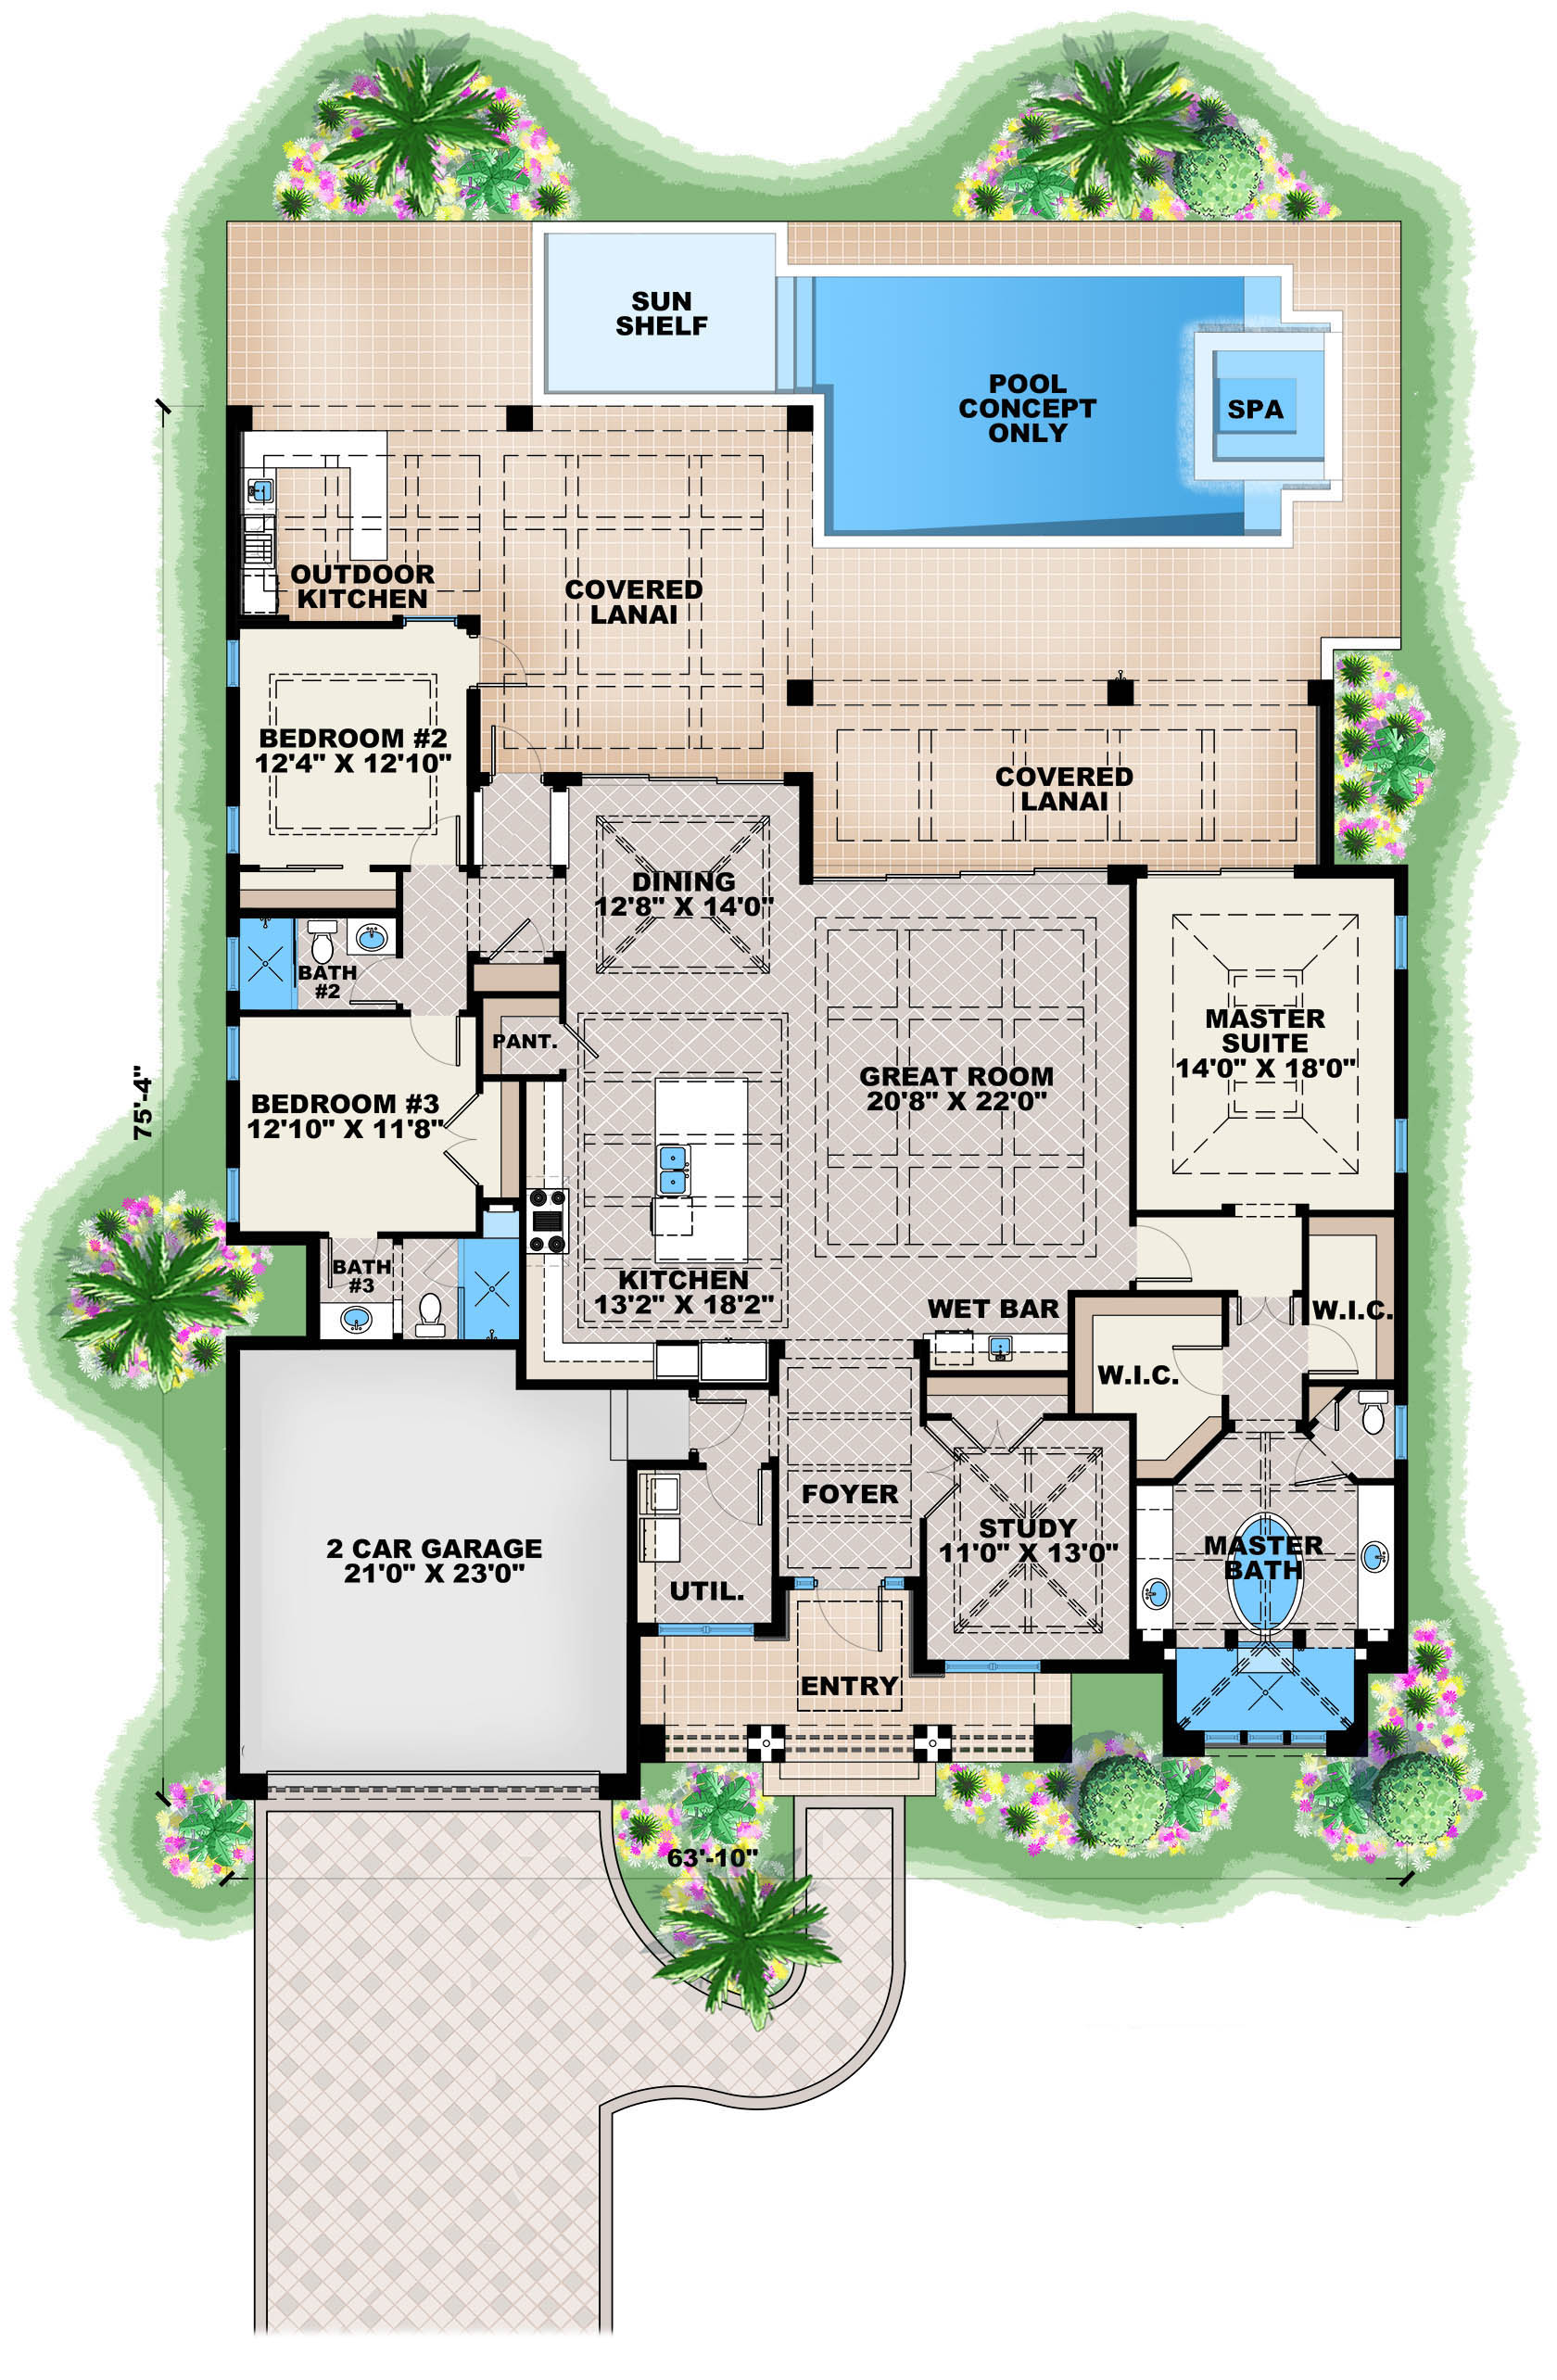 Contemporary house plan 175 1134 3 bedrm 2684 sq ft home plan Home design and layout